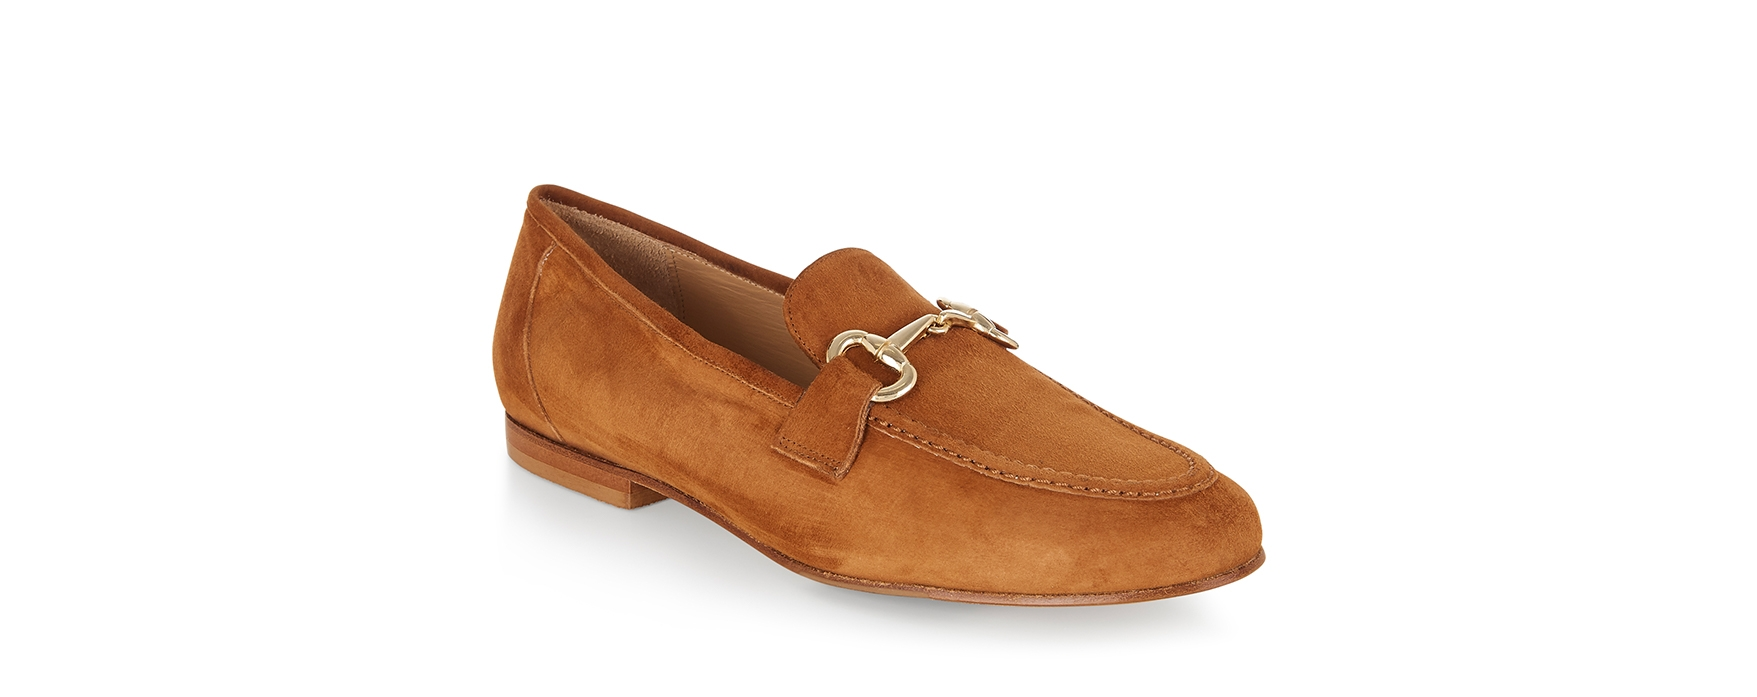 5_8-loafers---moccasins.jpg